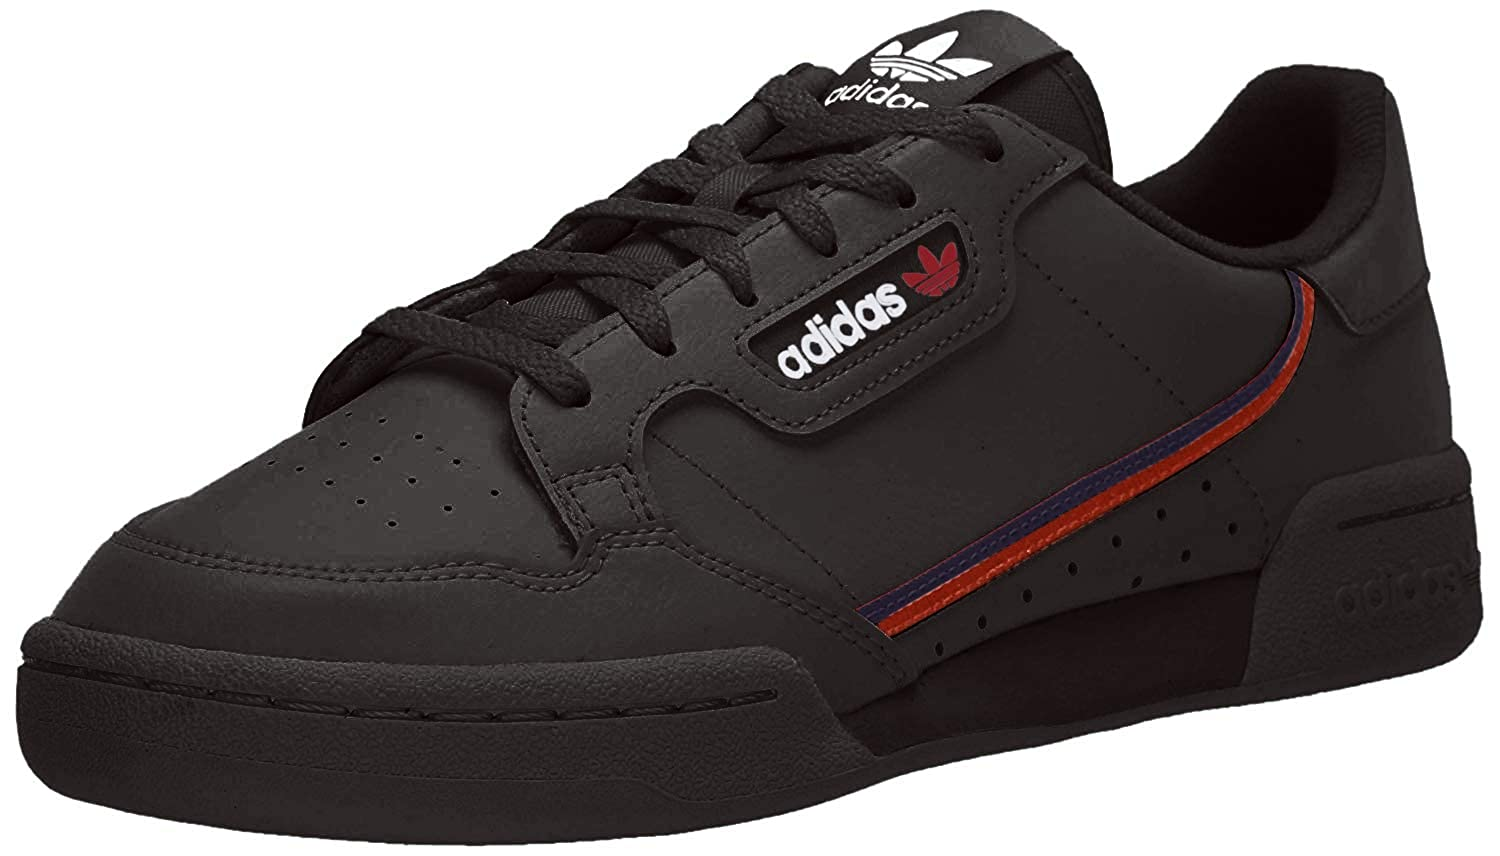 Buy Adidas Continental 80 Shoes Men's